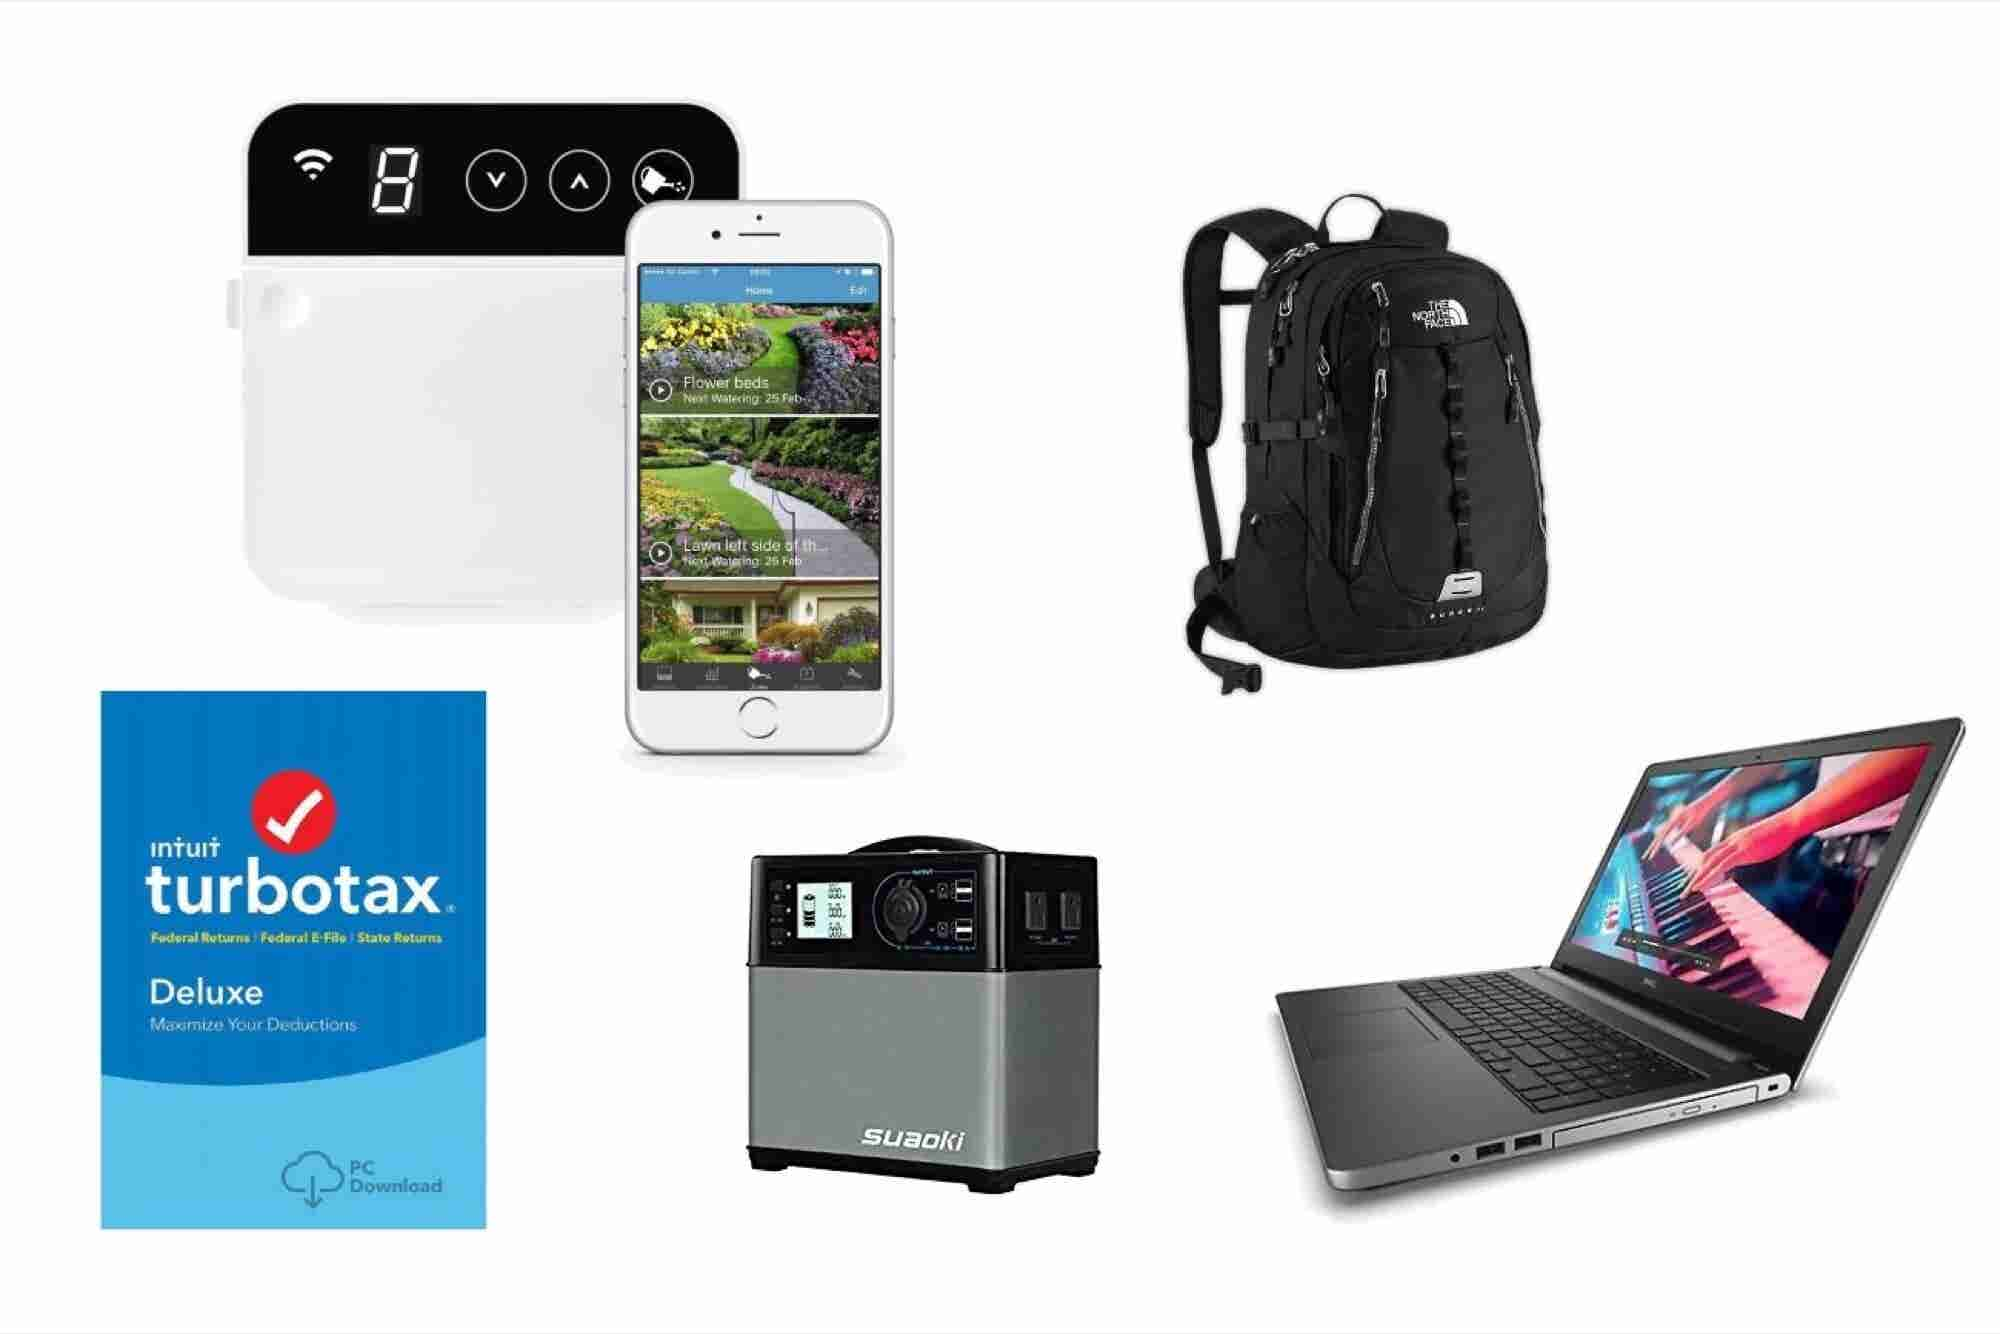 Save Big on TurboTax, Get a Great Deal on an Inspiron 15 Laptop and Mo...